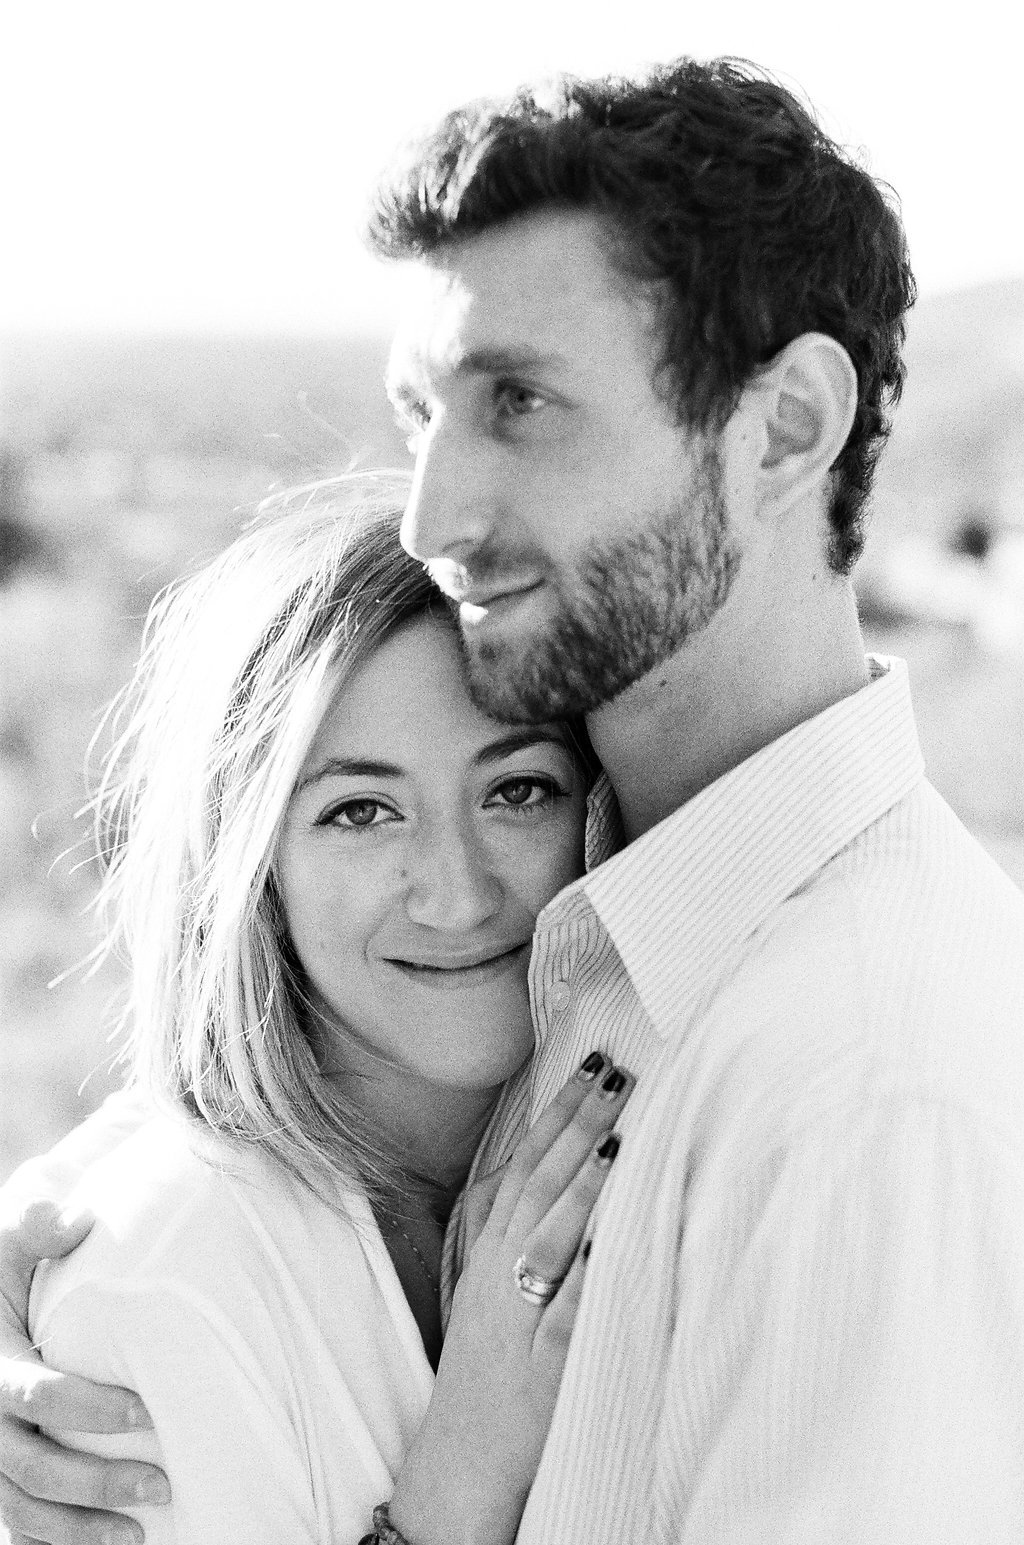 Couple embracing in black and white photo